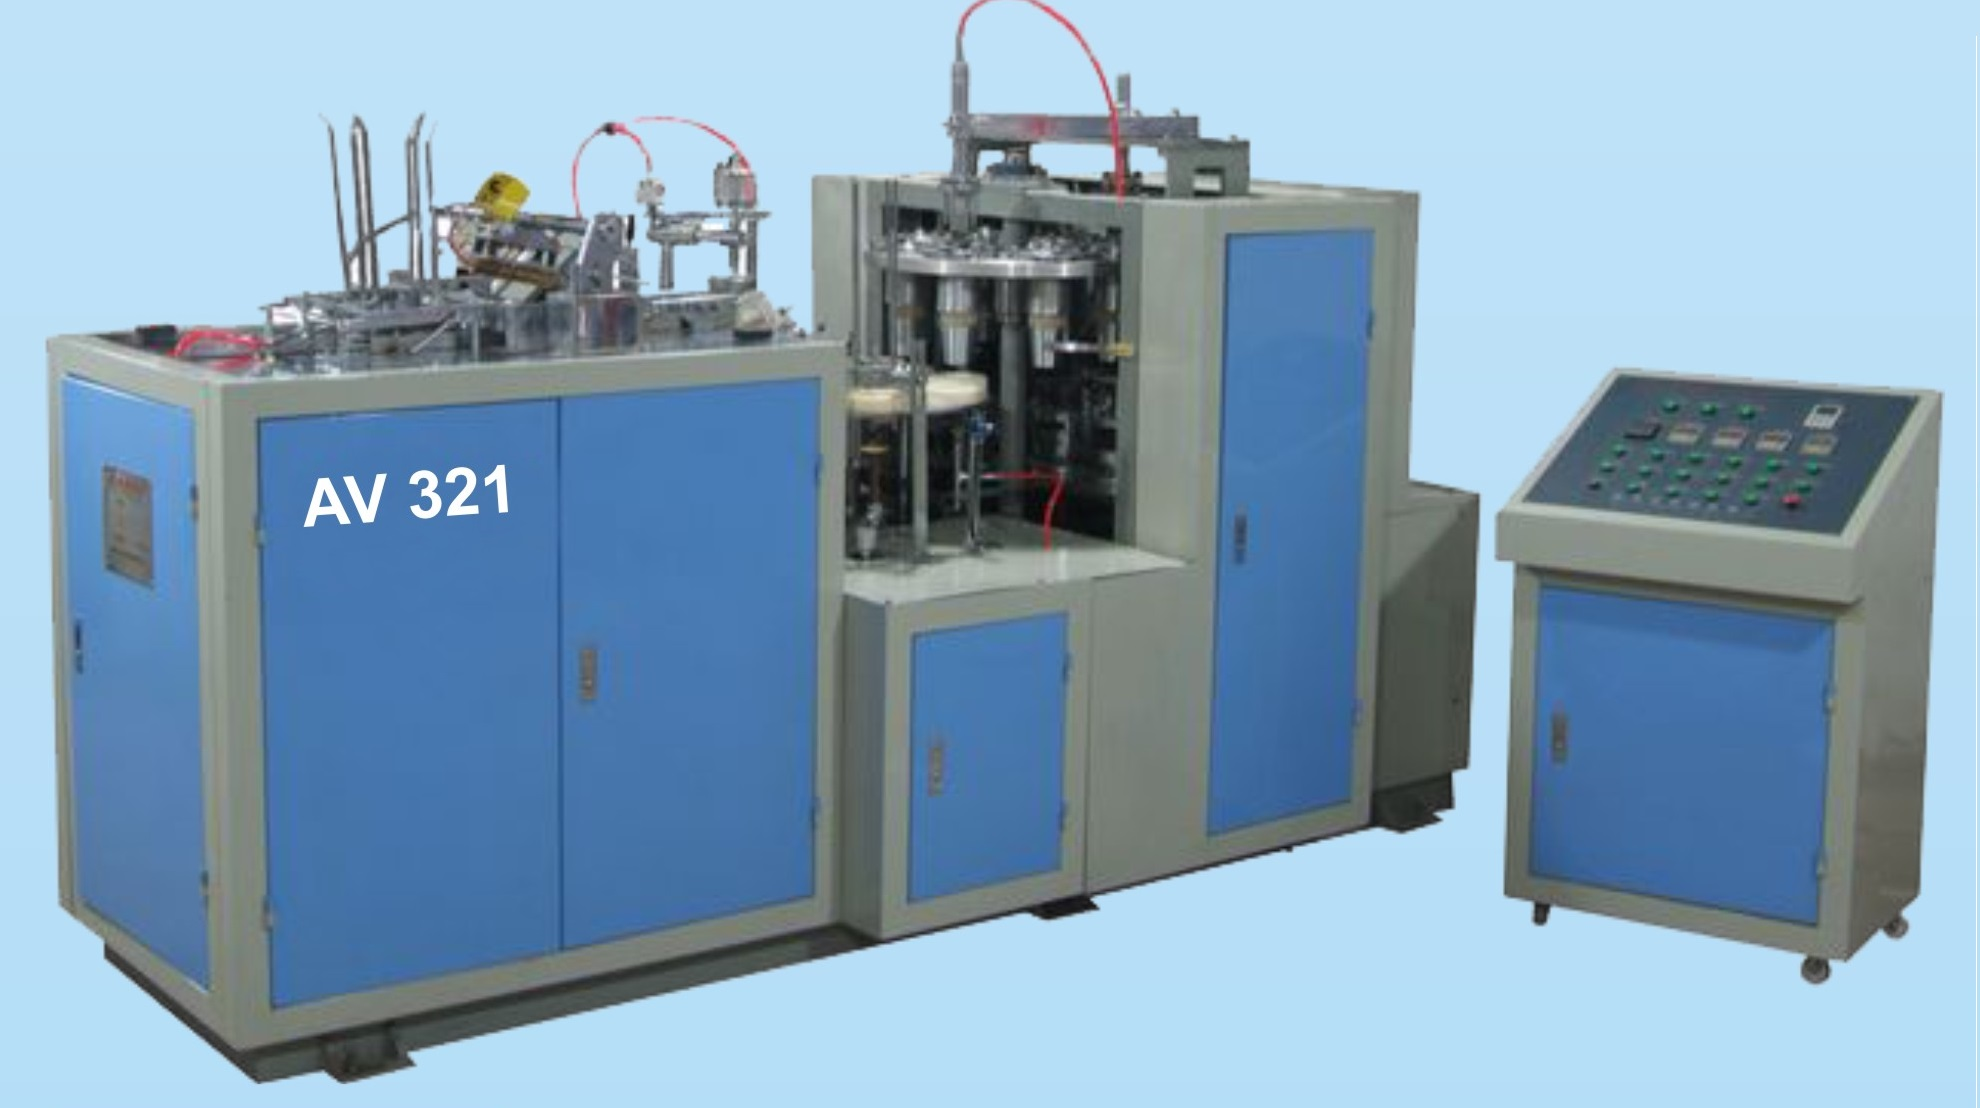 Paper Bowl Forming Machine Suppliers, Paper Bowl Forming Machine Manufacturers